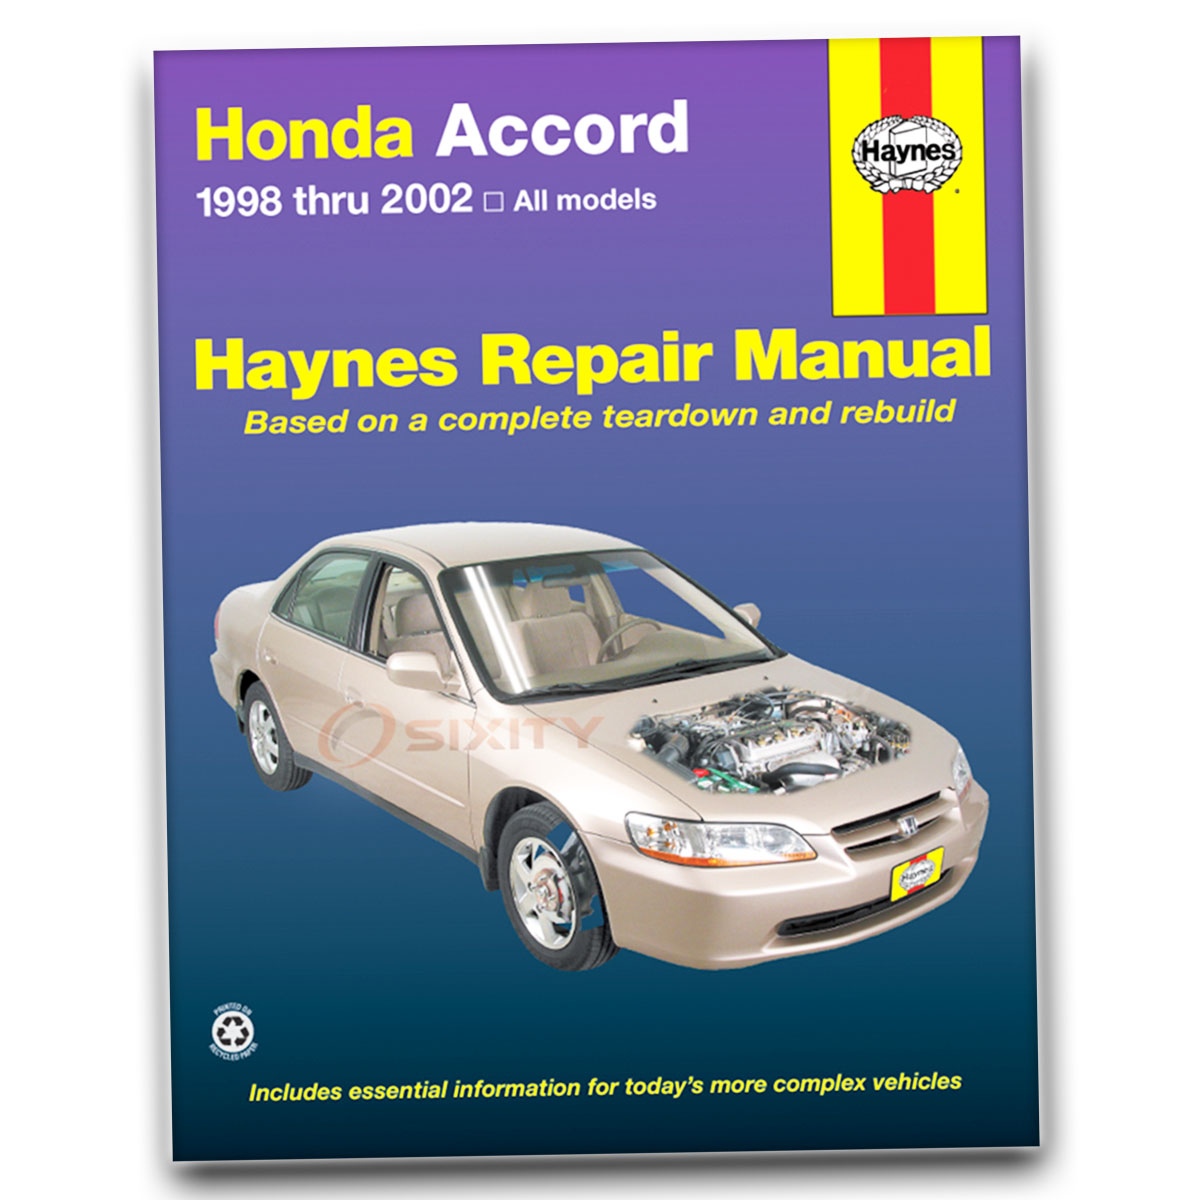 Haynes Honda Accord 98 02 Repair Manual 42014 Shop Service Garage Rh Ebay  Com 97 Honda CR V 98 Honda CR V Gas Mileage